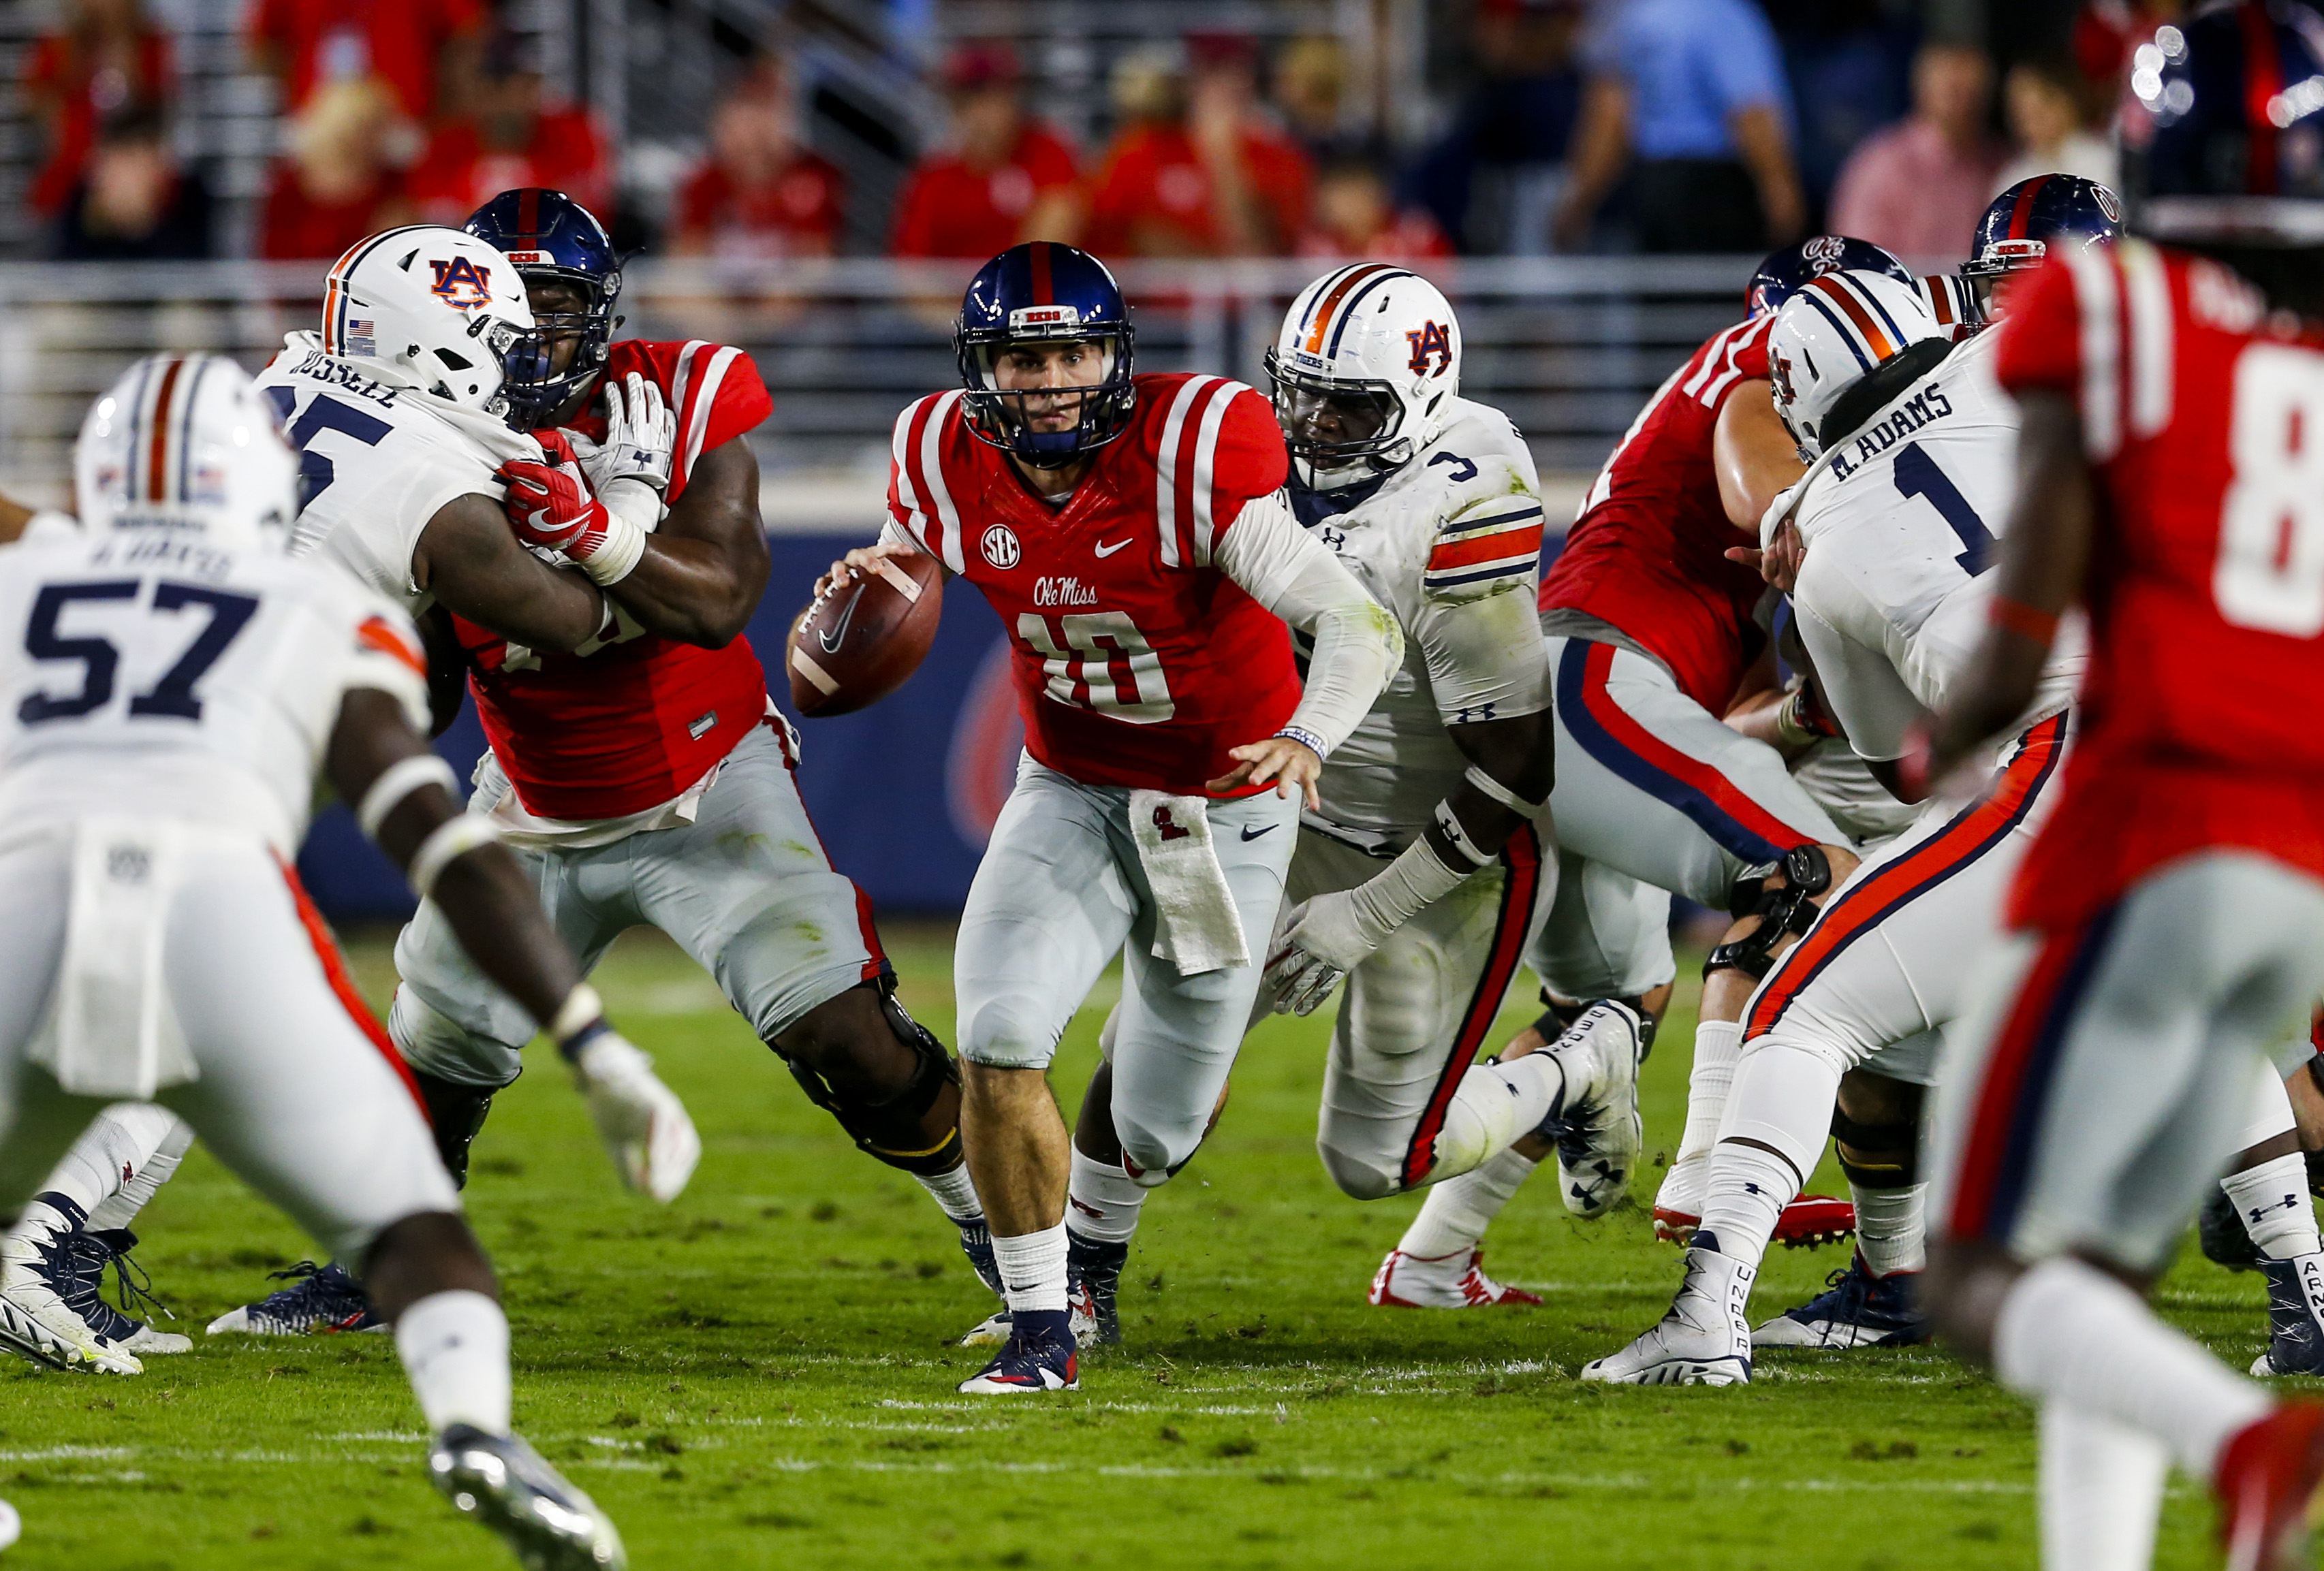 Chad Kelly hasn't played a game since Ole Miss, but he hopes that's about to change with Denver. (Getty Images)